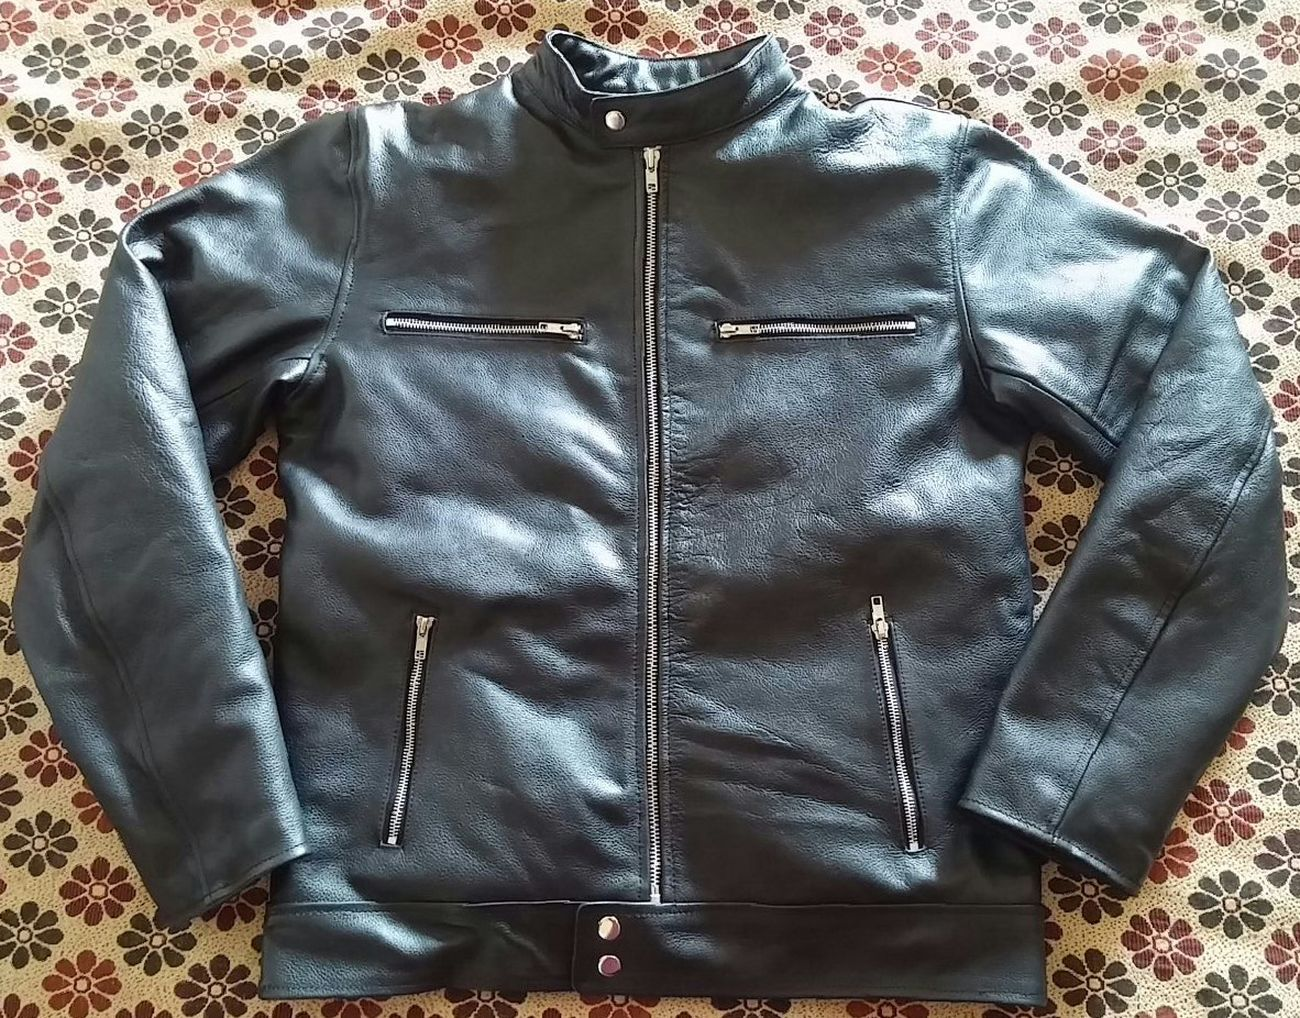 Our own made street fashion jacket for men Casual Clothing Leather Men Street Life Fashion Street Apparel Leatherjacket Jacket Leather Jacket Leather Apparel Streetphotography Fashionblogger Menswear Top - Garment Close-up Jackets